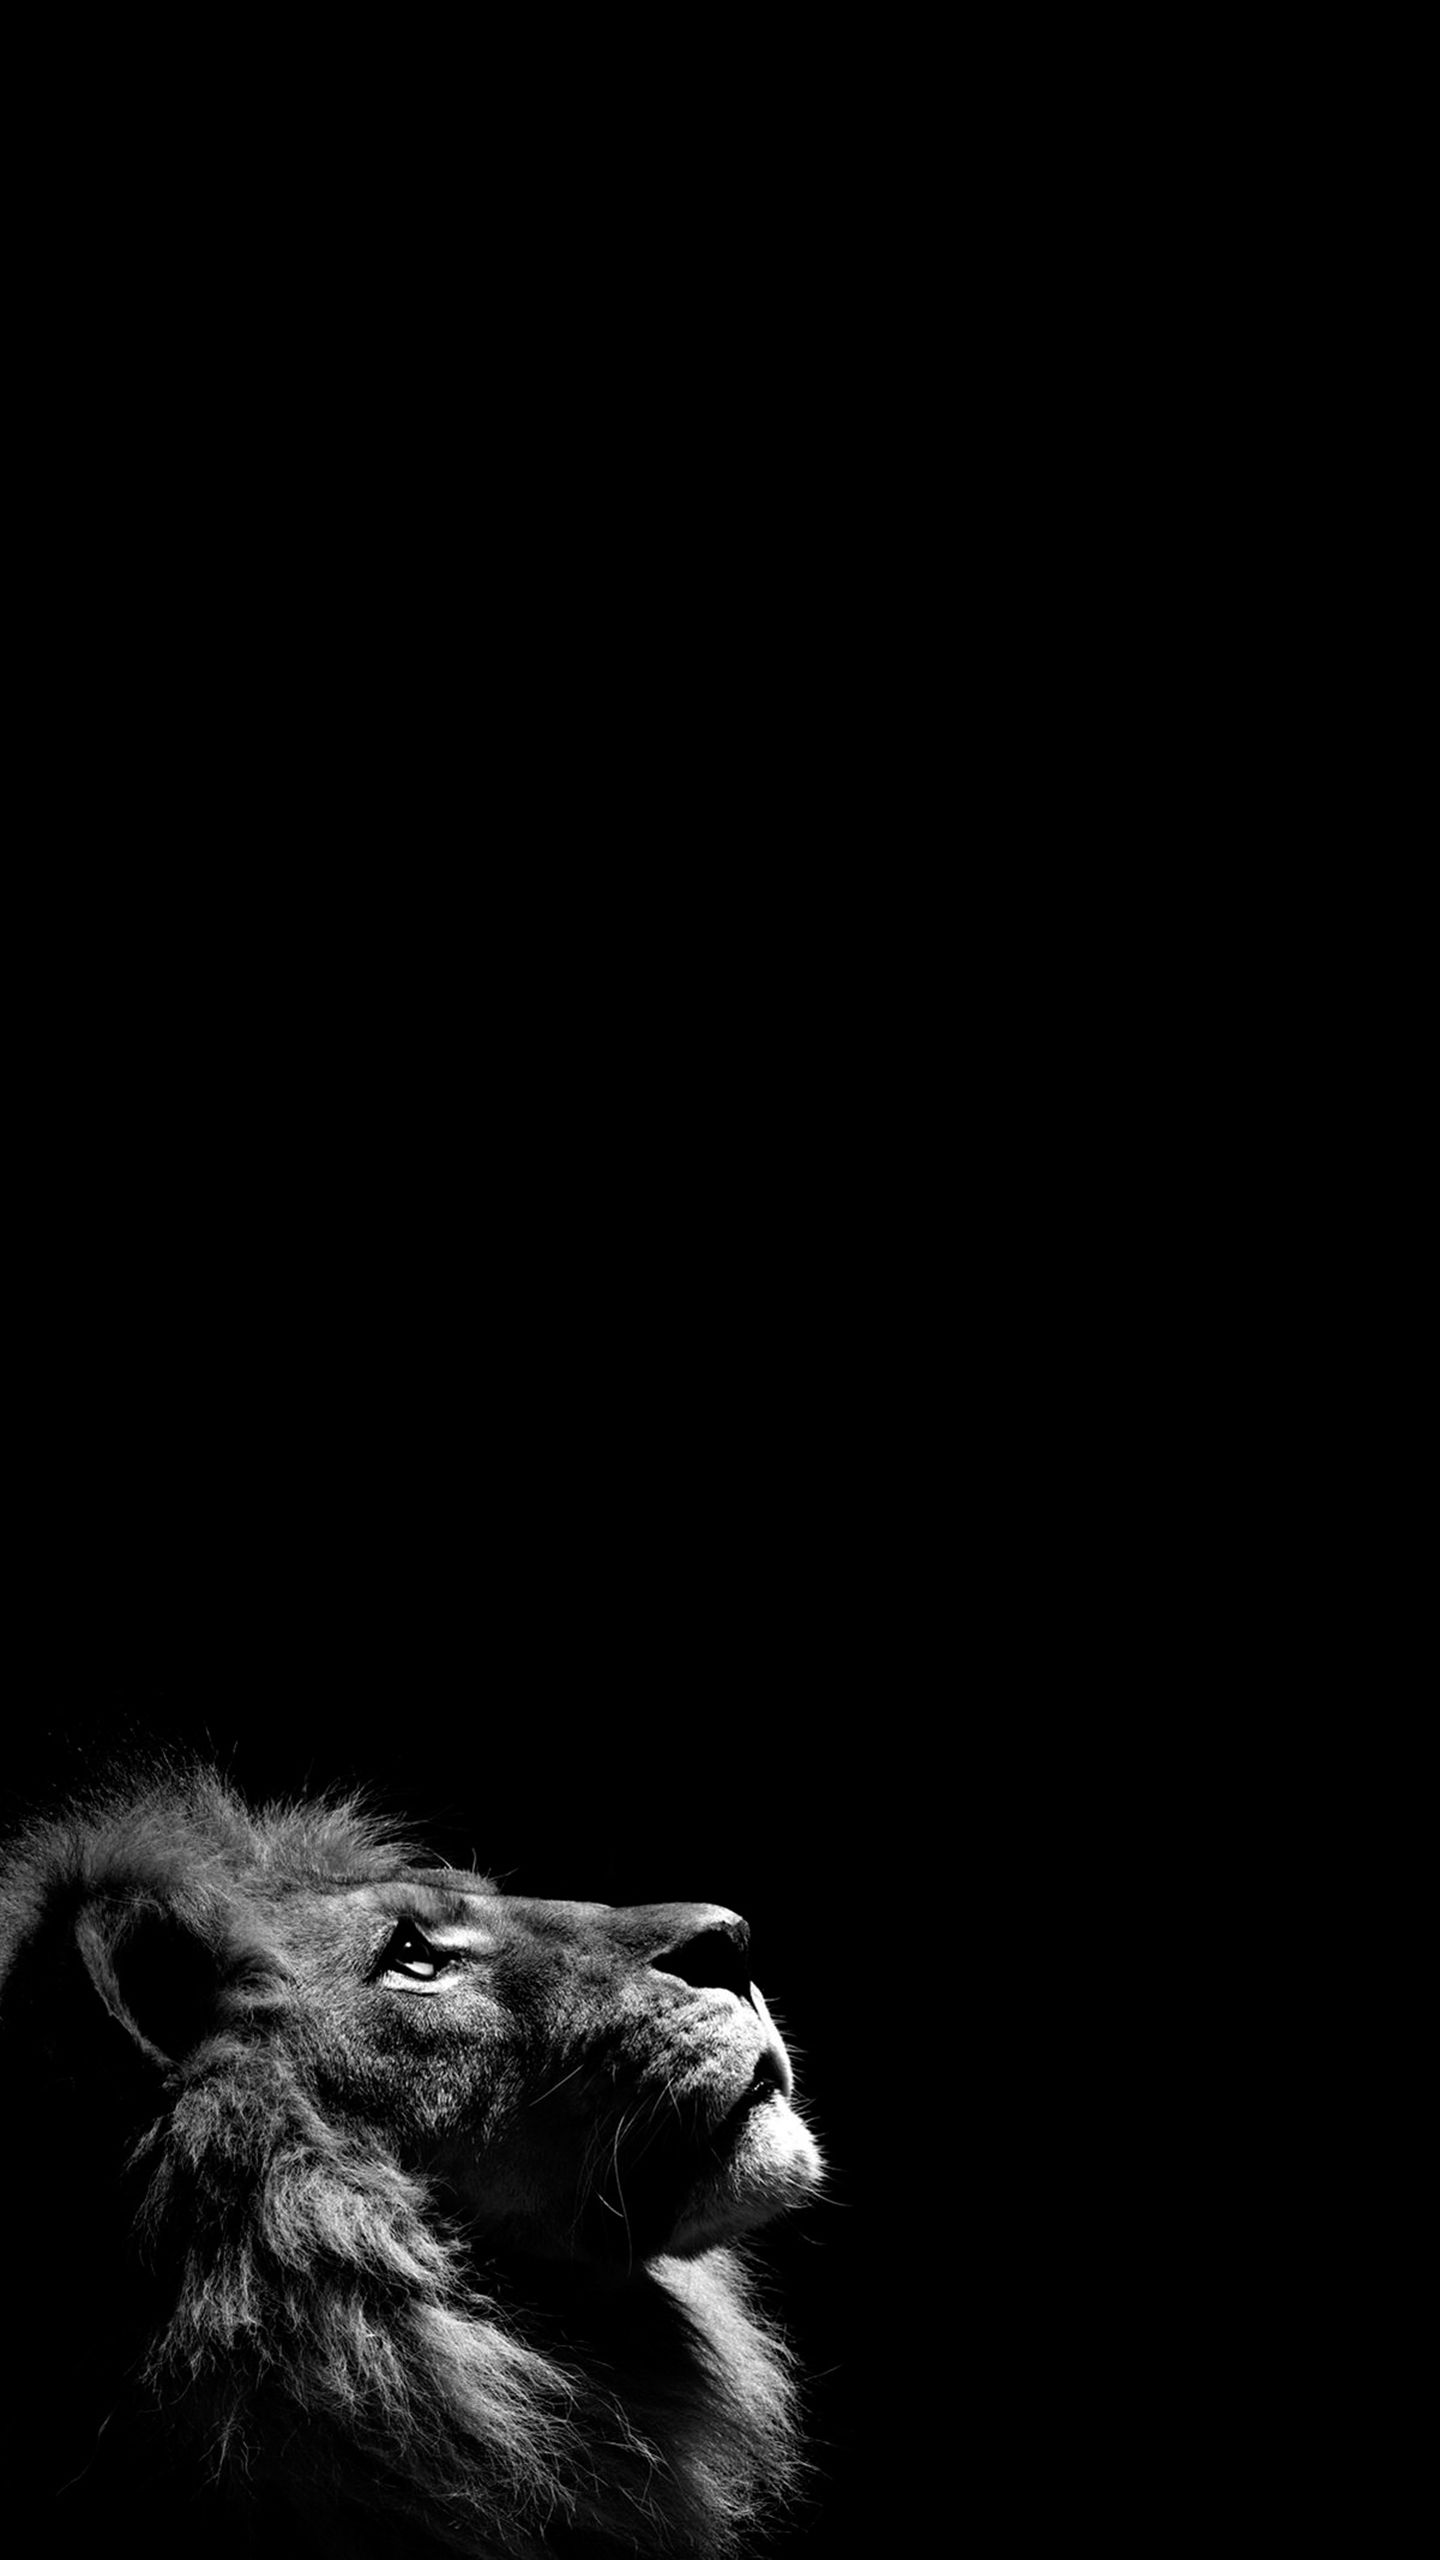 Amoled Wallpapers Lion Wallpaper Iphone Dark Wallpaper Iphone Iphone Wallpaper Photography